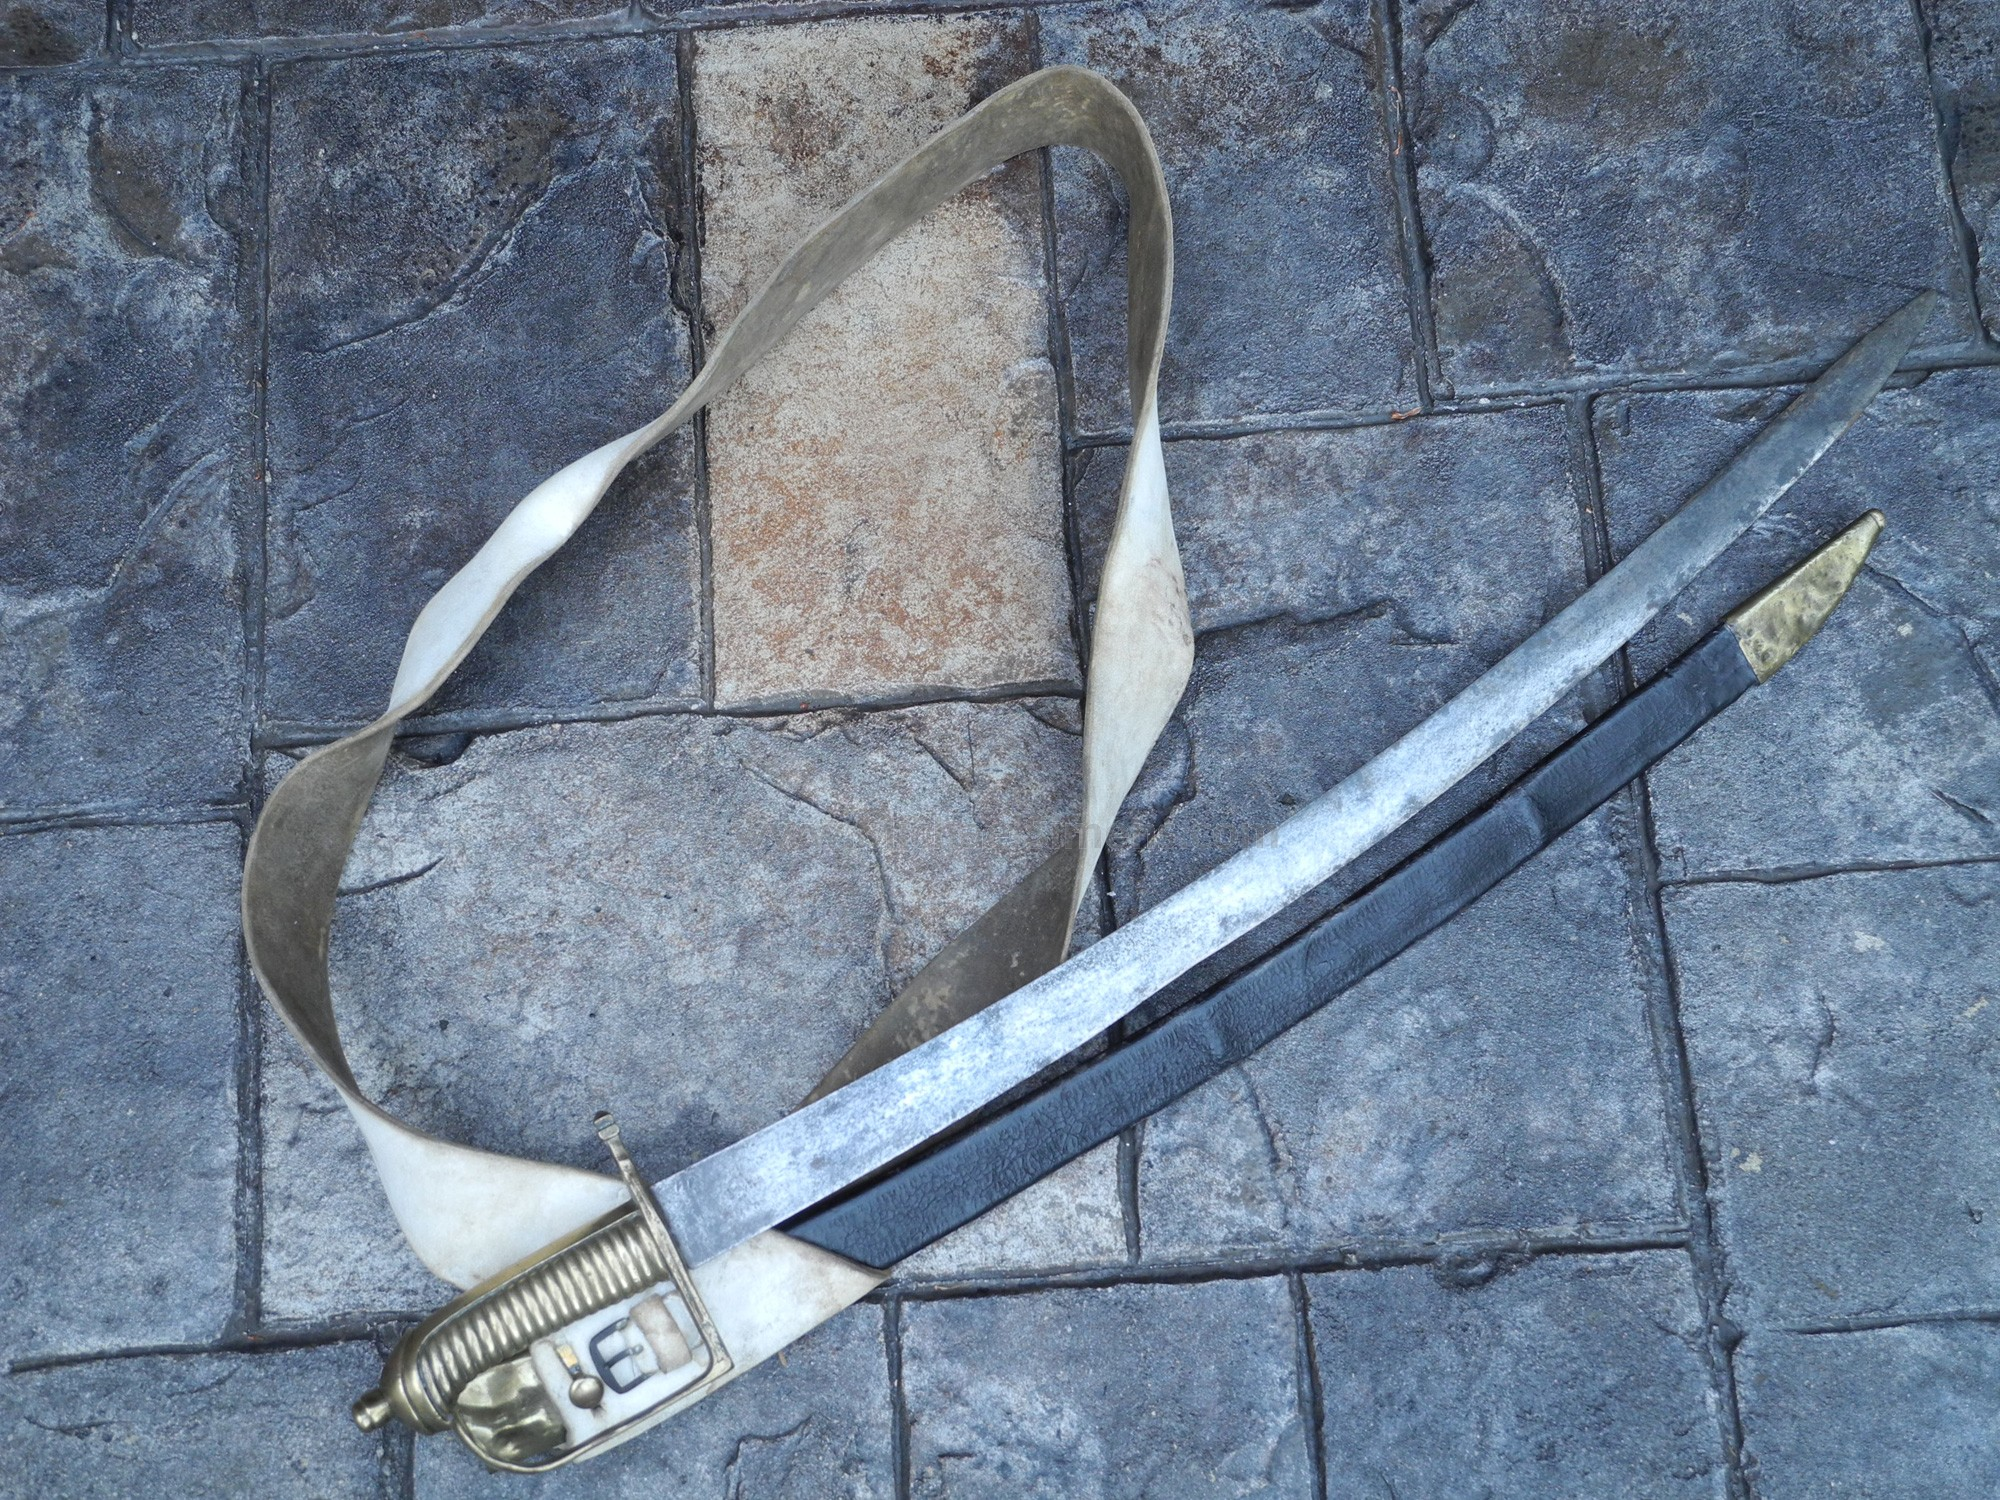 NAPOLEONIC SWORD, MODEL 1767 FRENCH BRIQUET WITH ORIGINAL BELT AND FROG